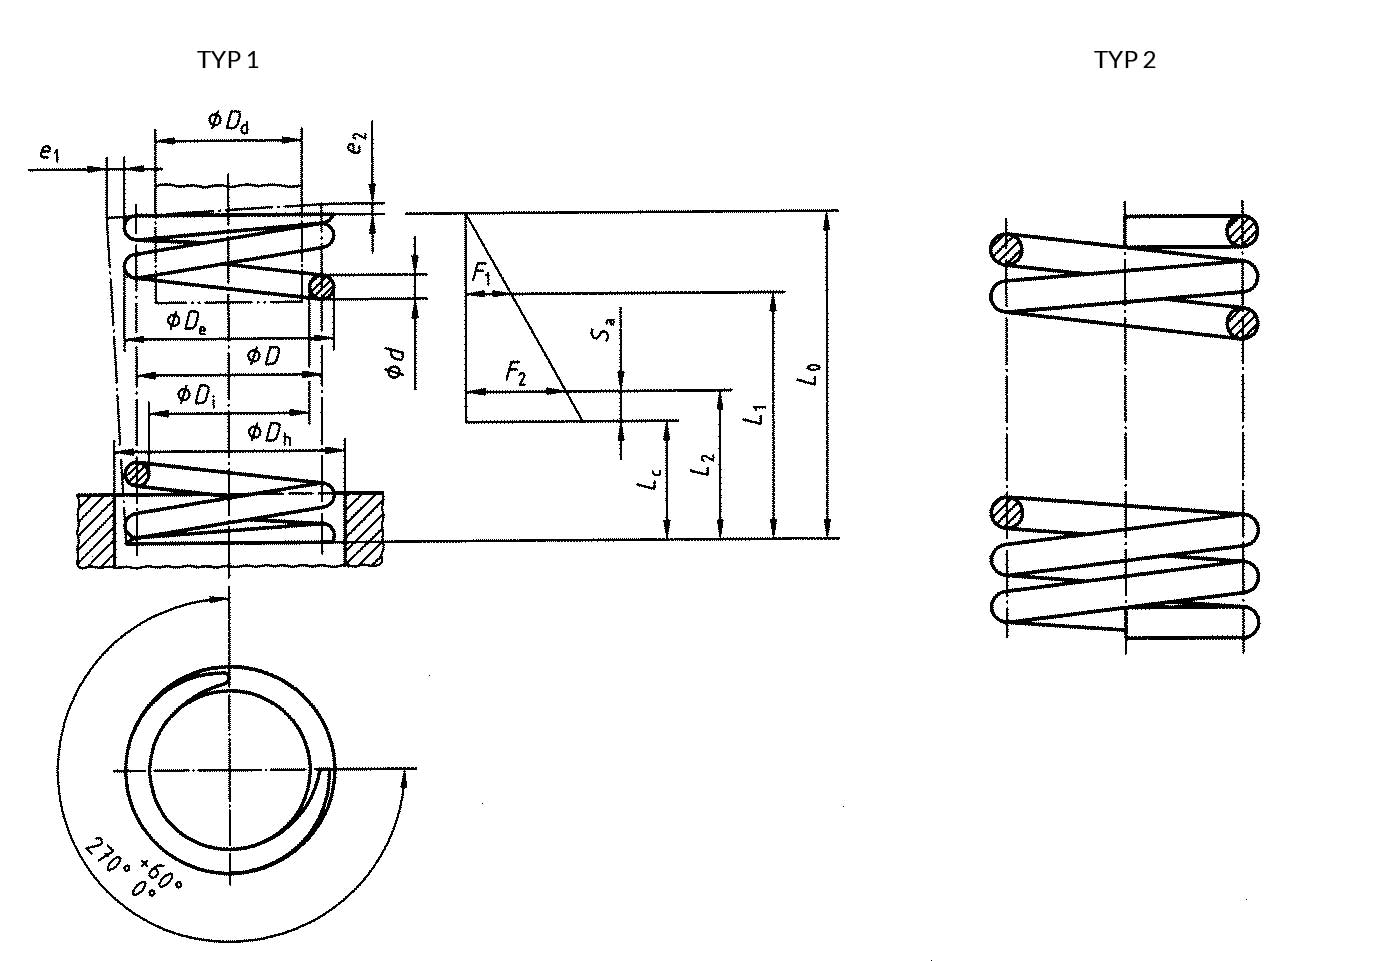 Fig. 11 Compression springs. With closed coil and ground ends - type 1; with closed ends - type 2; or without ends - open coils, not ground.